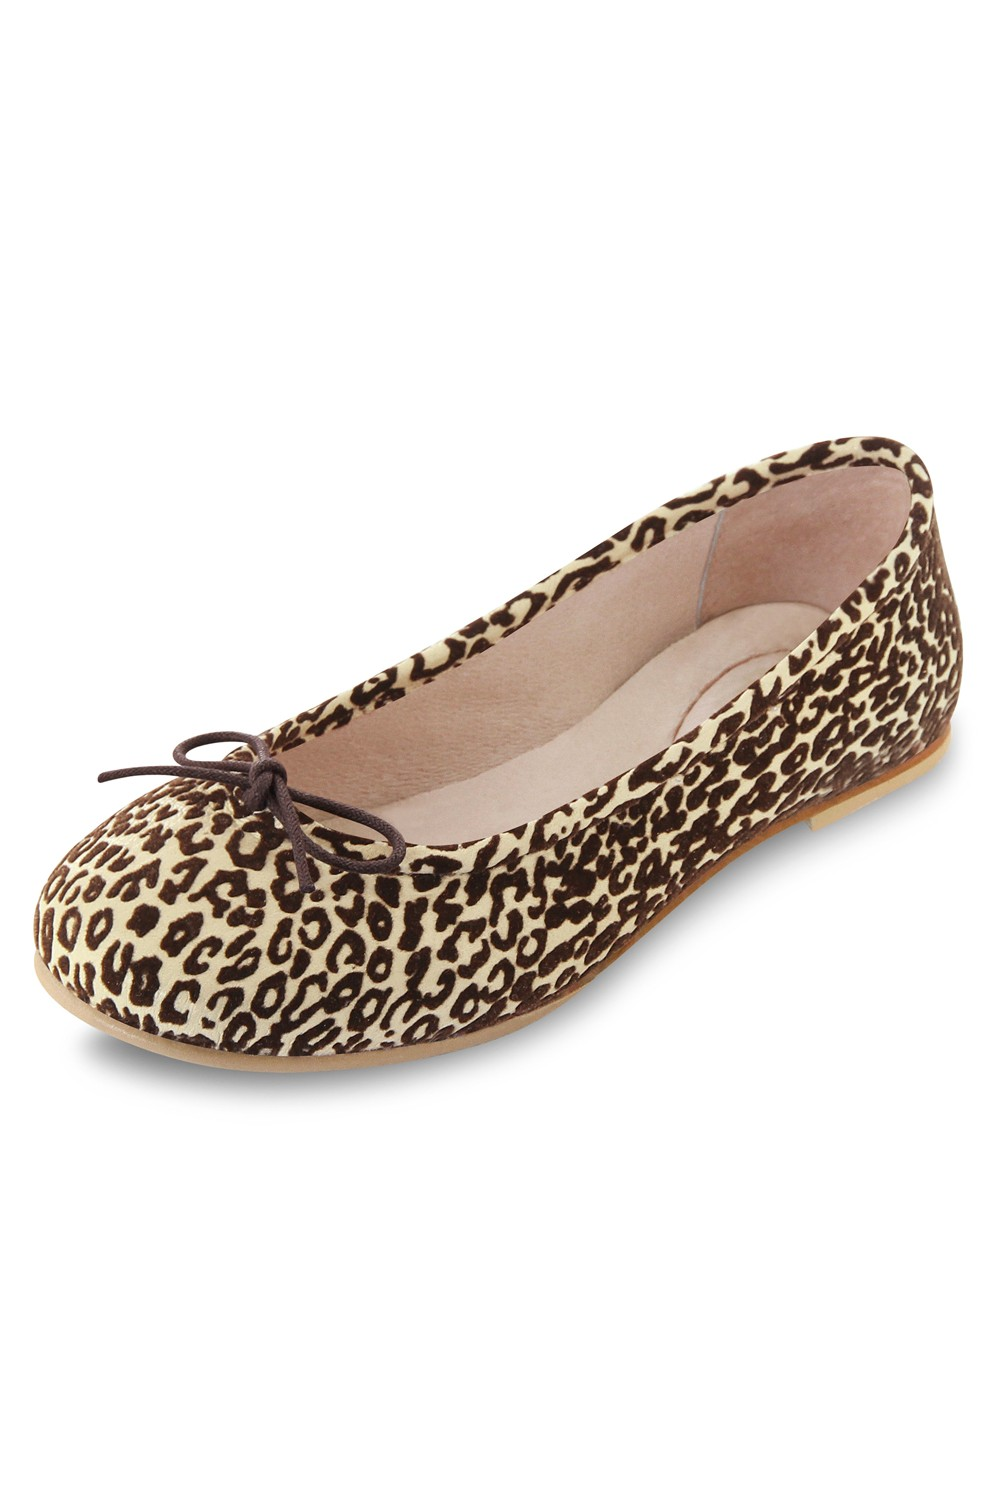 Arabella Leopard - Niñas Girls Fashion Shoes